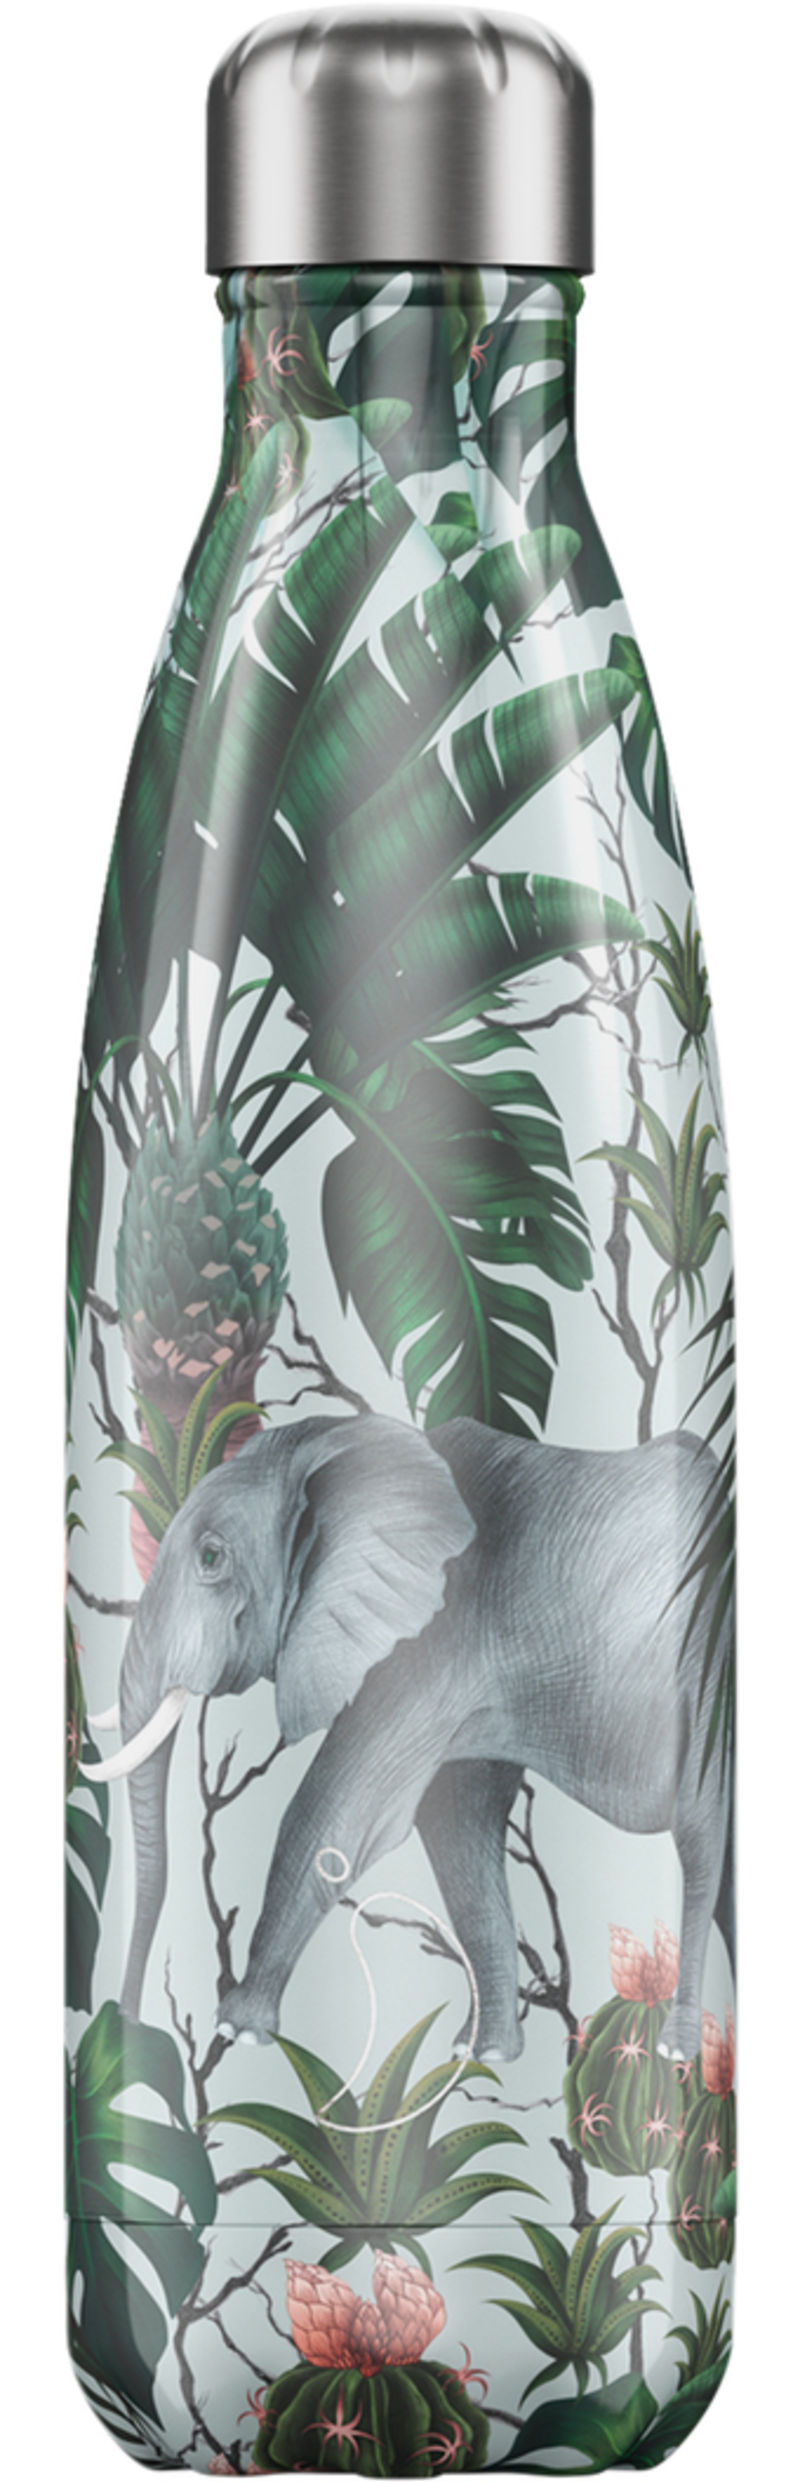 Botella Inox Tropical Elefante 500ml -